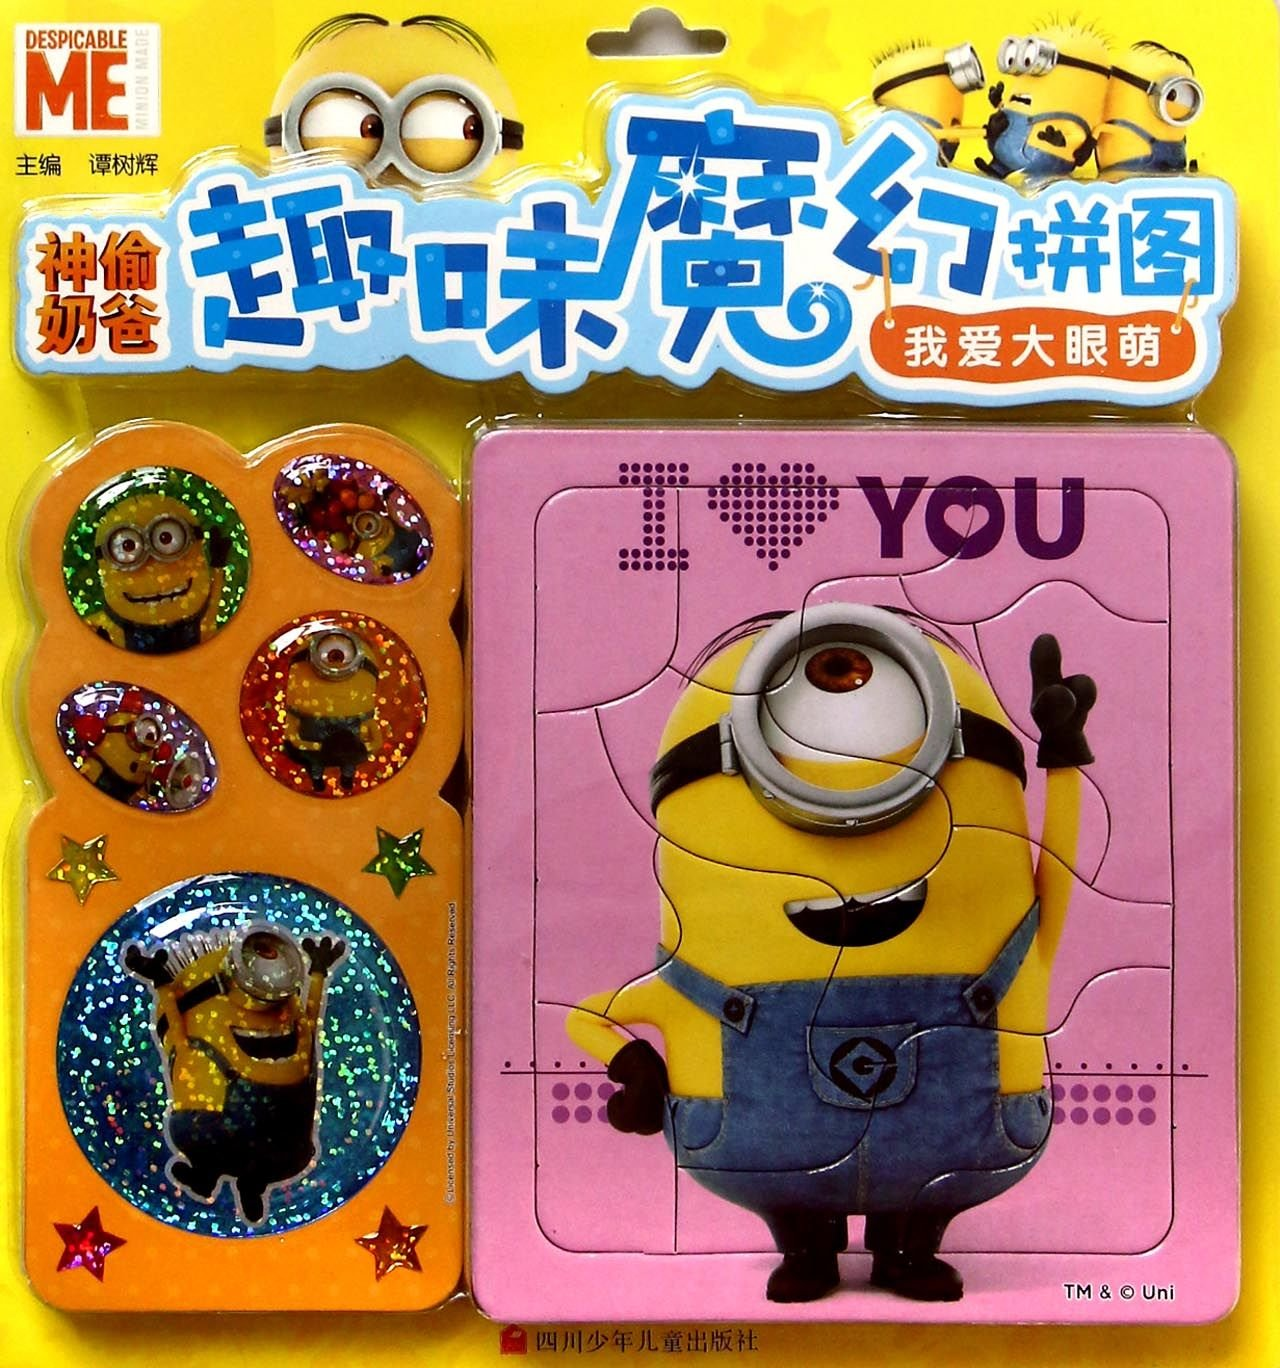 Interesting Magic Puzzle of Despicable Me: I Love Minions (Chinese Edition) ebook